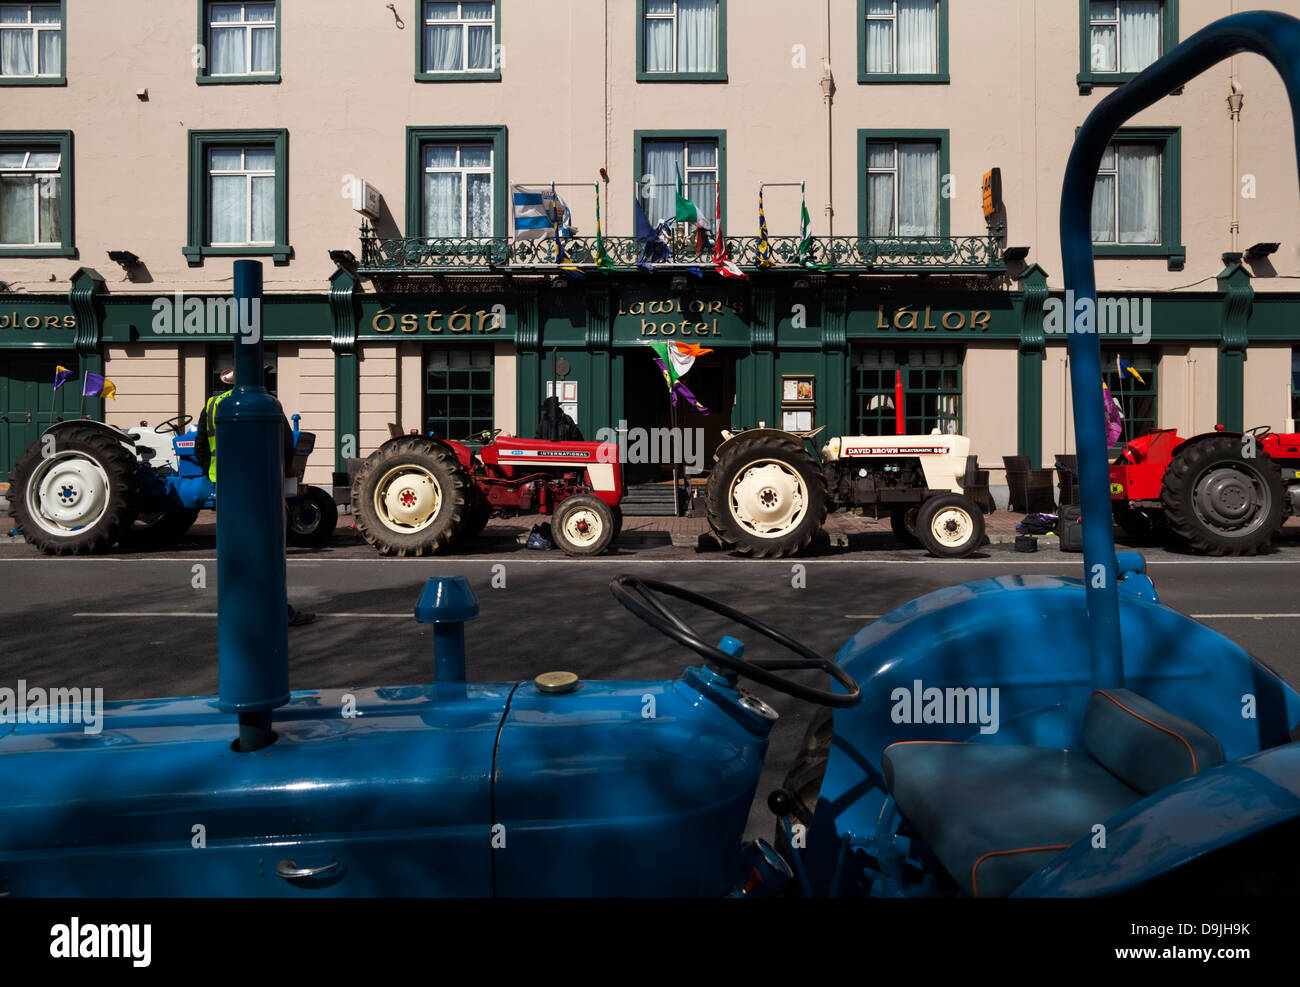 Vintage Tractors lined up outside Lalors Hotel, Dungarvan, County Waterford, Ireland - Stock Image